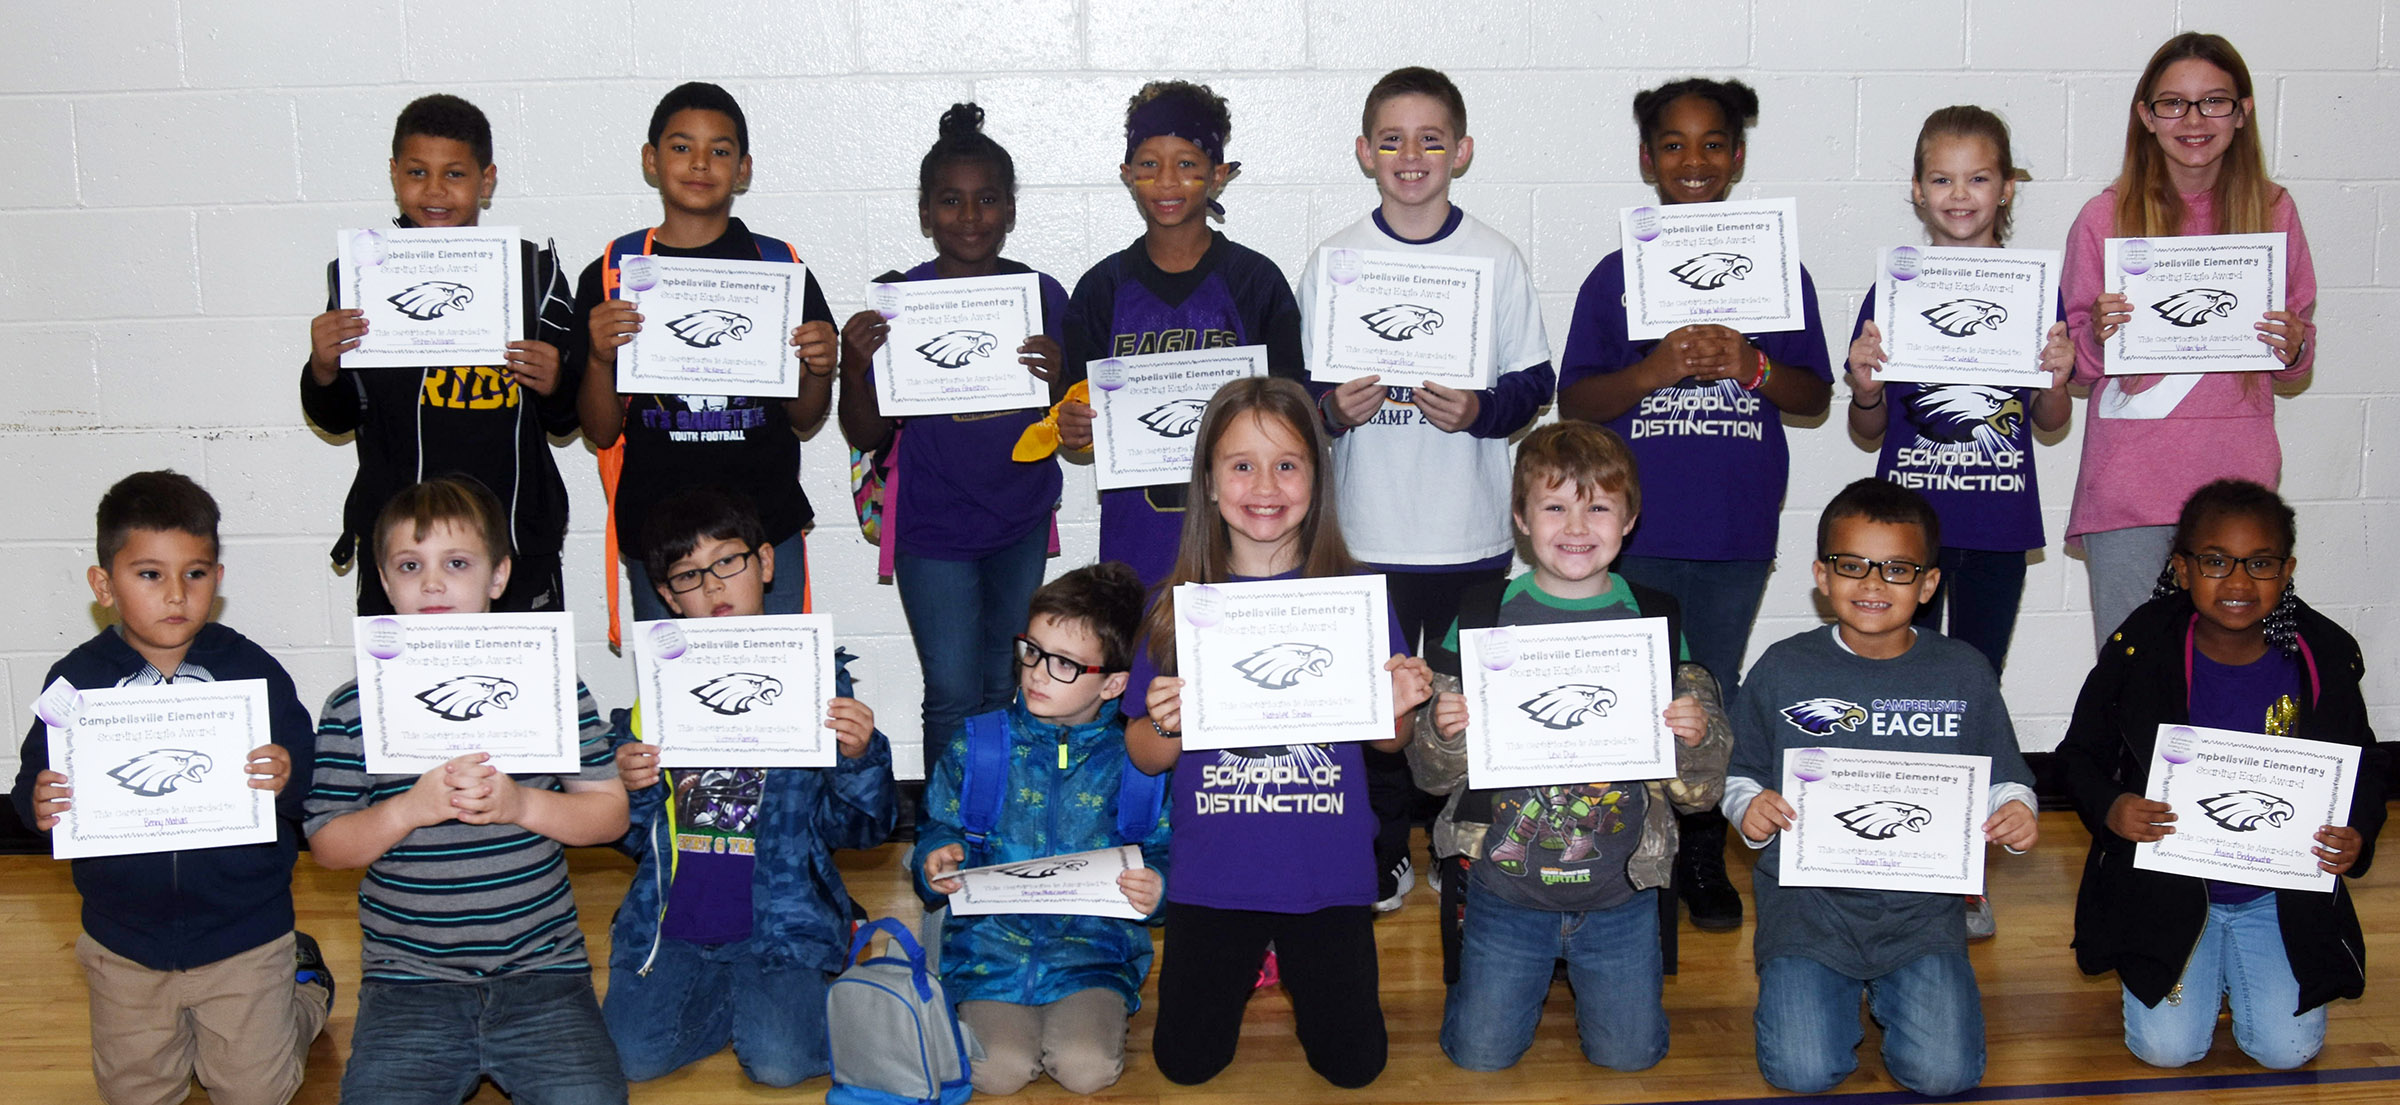 From left, front, are kindergartener Benny Matias, second-grader John Lane, first-grader Victrin Ramsey, kindergartener Peyton Mascarenas, second-grader Natalee Shaw, first-grader Levi Dye, second-grader Davian Taylor and kindergartener Kyona Mitchell. Back, third-graders Tristen Williams, Rizzo McKenzie and Destini Gholston, fourth-graders Rajon Taylor and Lanigan Price, fifth-grader KaMiya Williams, second-grader Zoe Weddle and fifth-grader Vivian York. Absent from the photo are kindergarteners Jayla Barbee and Eddie Parsley, first-graders Alaina Bridgewater and Jamerius Miller and fifth-grader Eva Bledsoe.